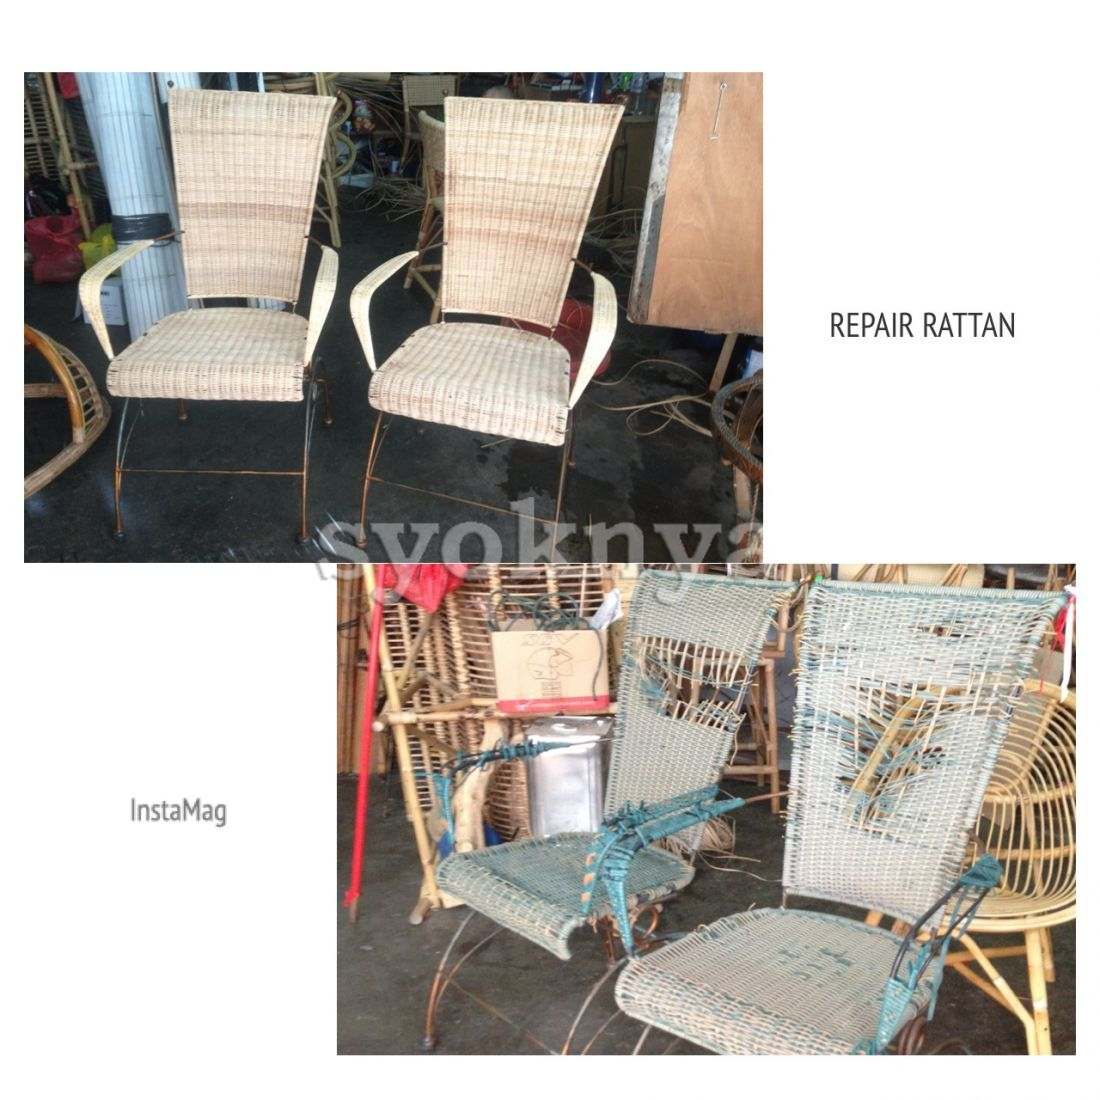 Superb img of Sell Repair Rattan Furniture Rattan Sofa Cane/Wicker Chair Wood  with #895C42 color and 1100x1100 pixels